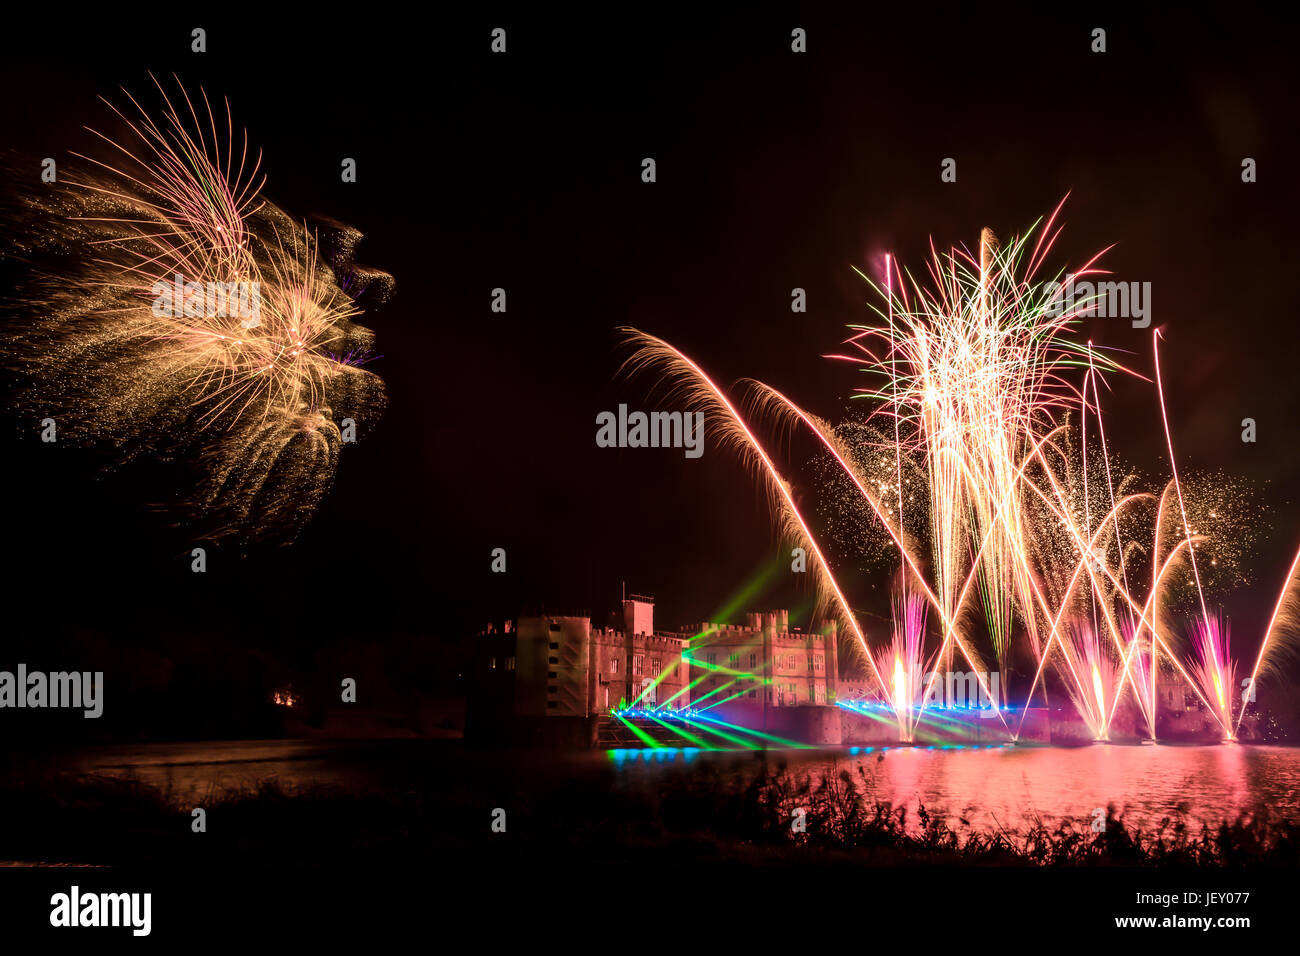 LEEDS CASTLE ANNUAL FIREWORKS DISPLAY,   (A MUST SEE EVENT) Stock Photo